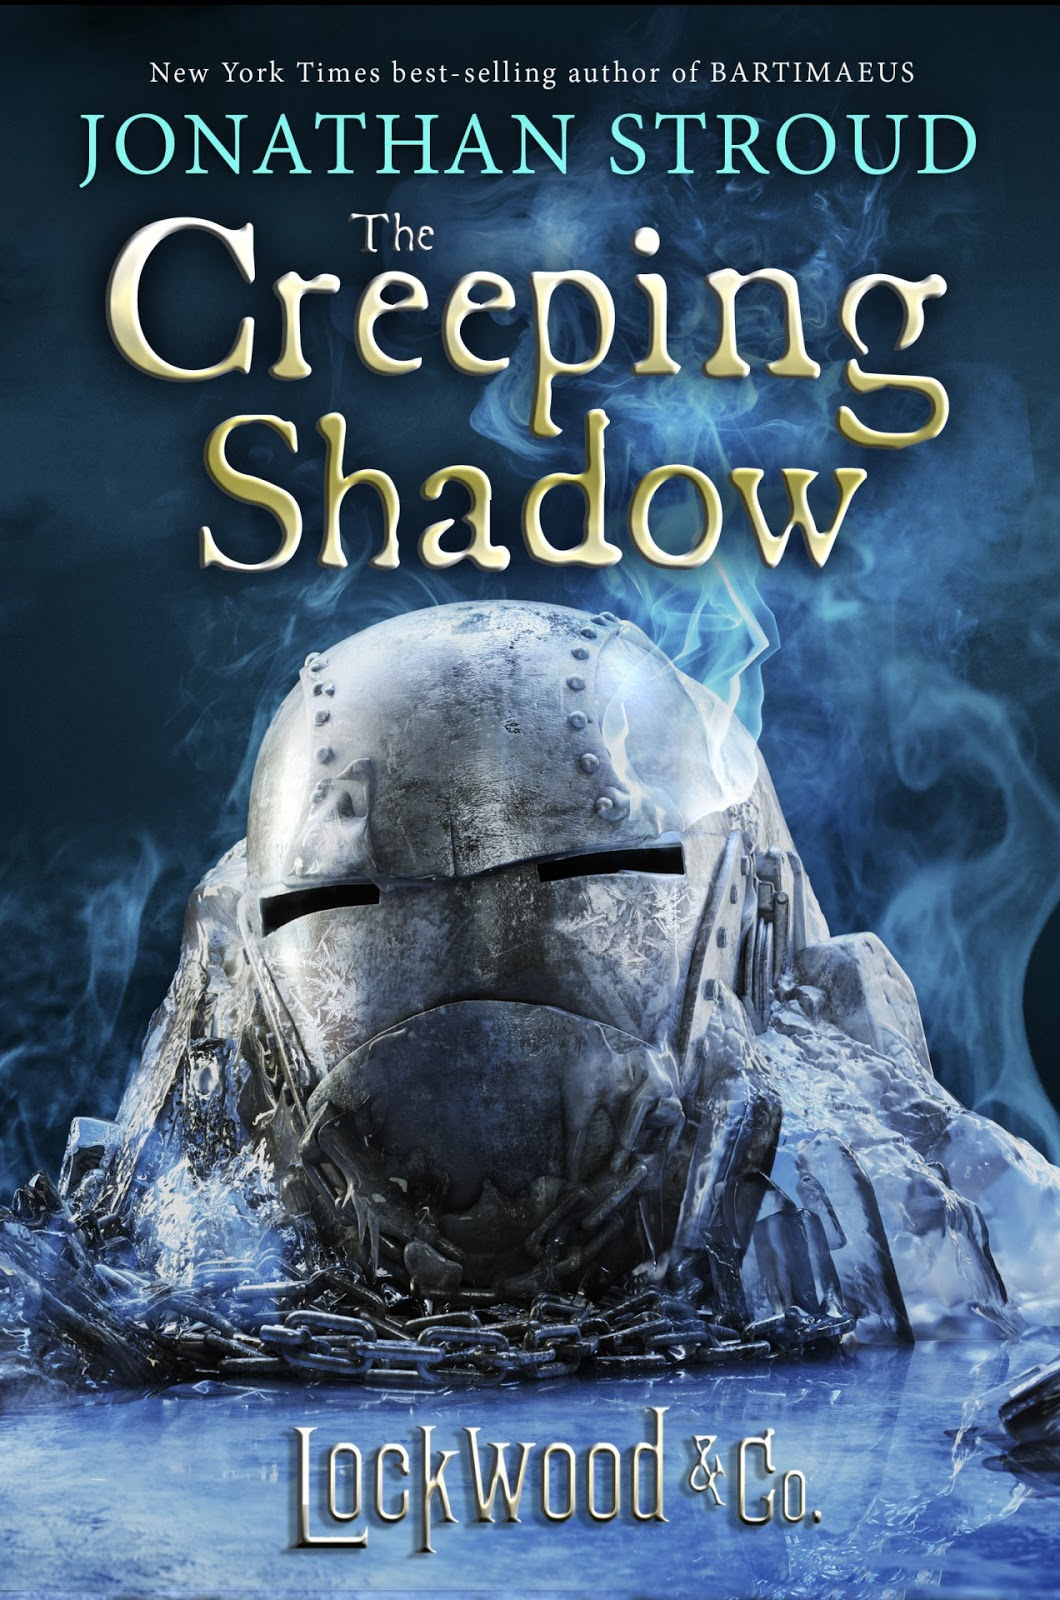 Lockwood & Company: The Creeping Shadow by Jonathan Stroud